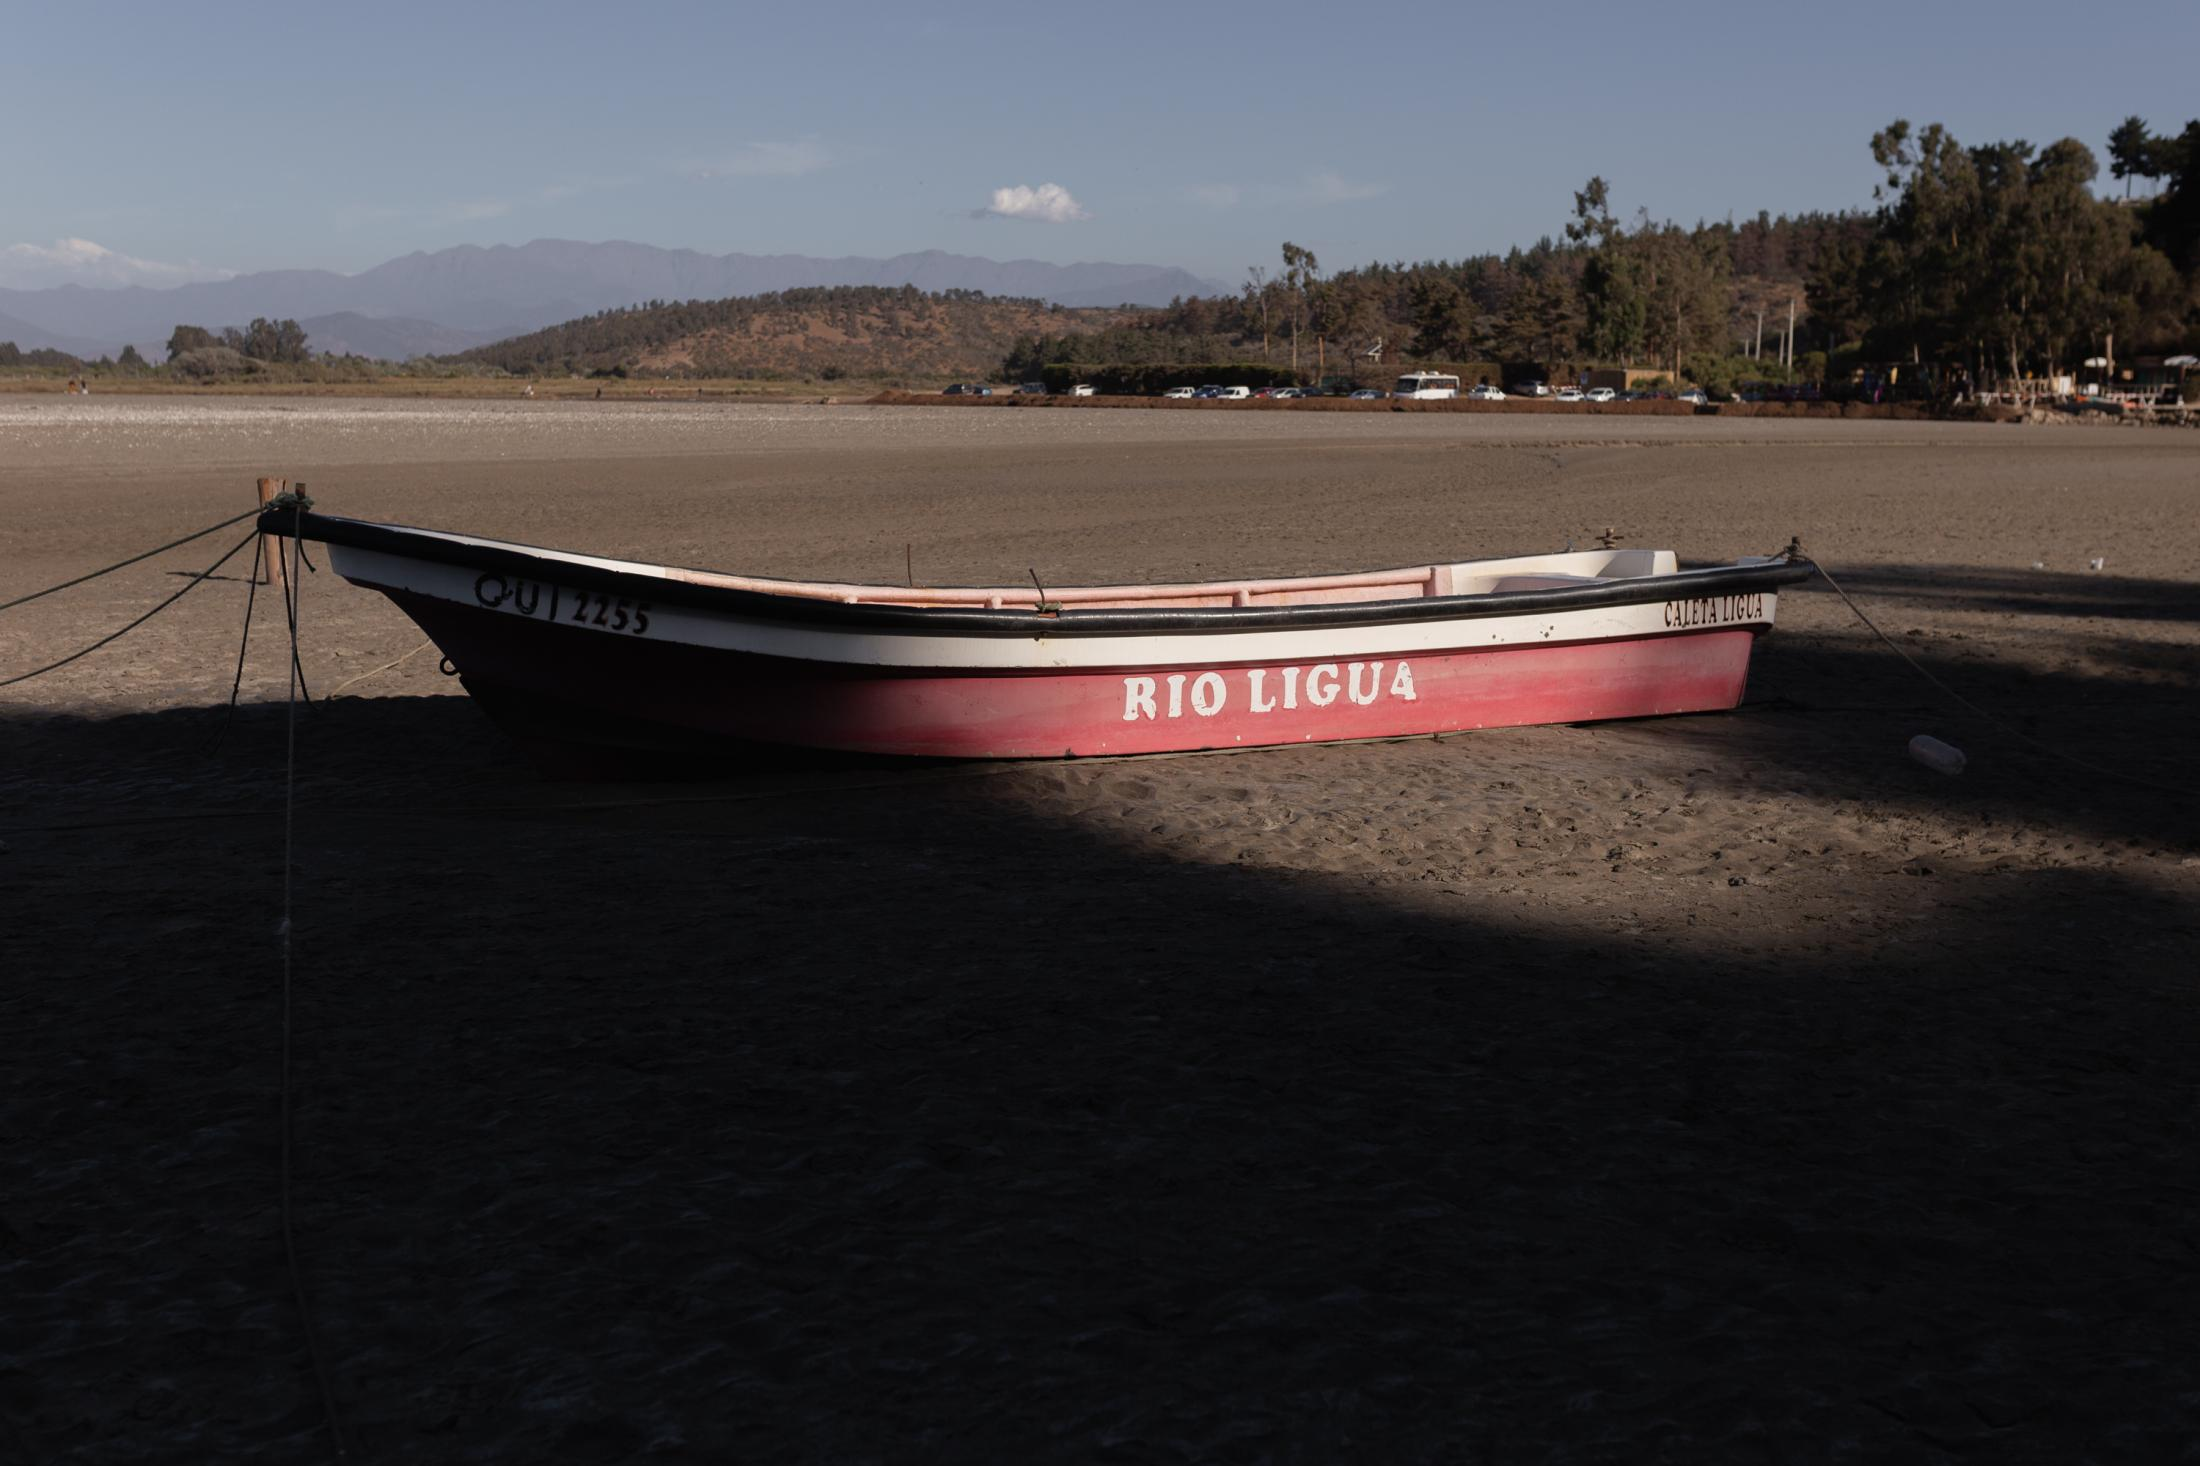 """December, 12, 2020.A boat named """"Río Ligua"""" is seen on Las Salinas beach, 20 km from La Ligua, on the coast of the province. The Ligua and Petorca rivers were declared depleted in 2004 and 1997 respectively, when the avocado industry began to monopolize surface and underground water rights of both rivers, a situation generated by the policies established in the Chilean Water Code of 1981, which allows the privatization of water and its indiscriminate exploitation without being clear about the availability of water in the basins."""